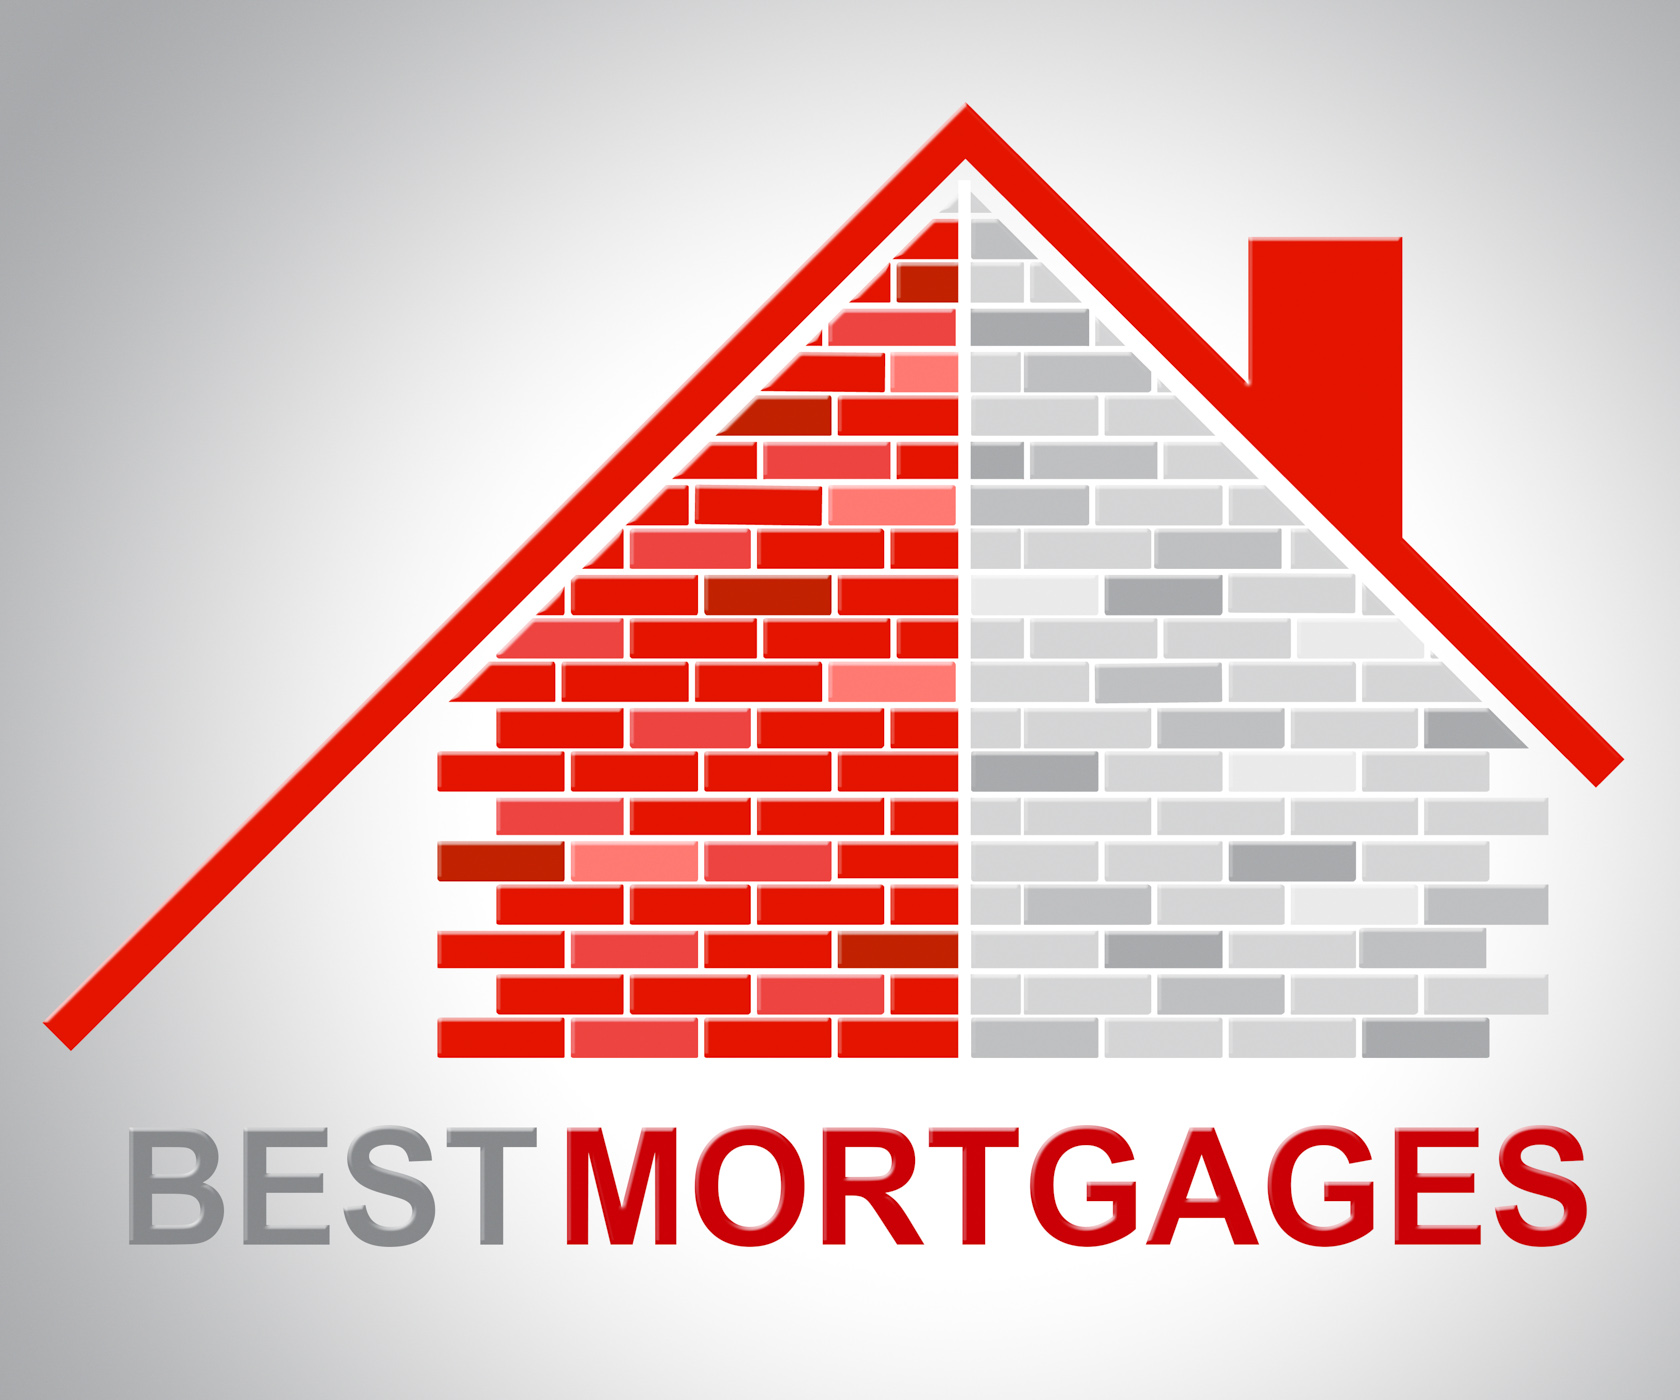 Best mortgages represents real estate and better photo